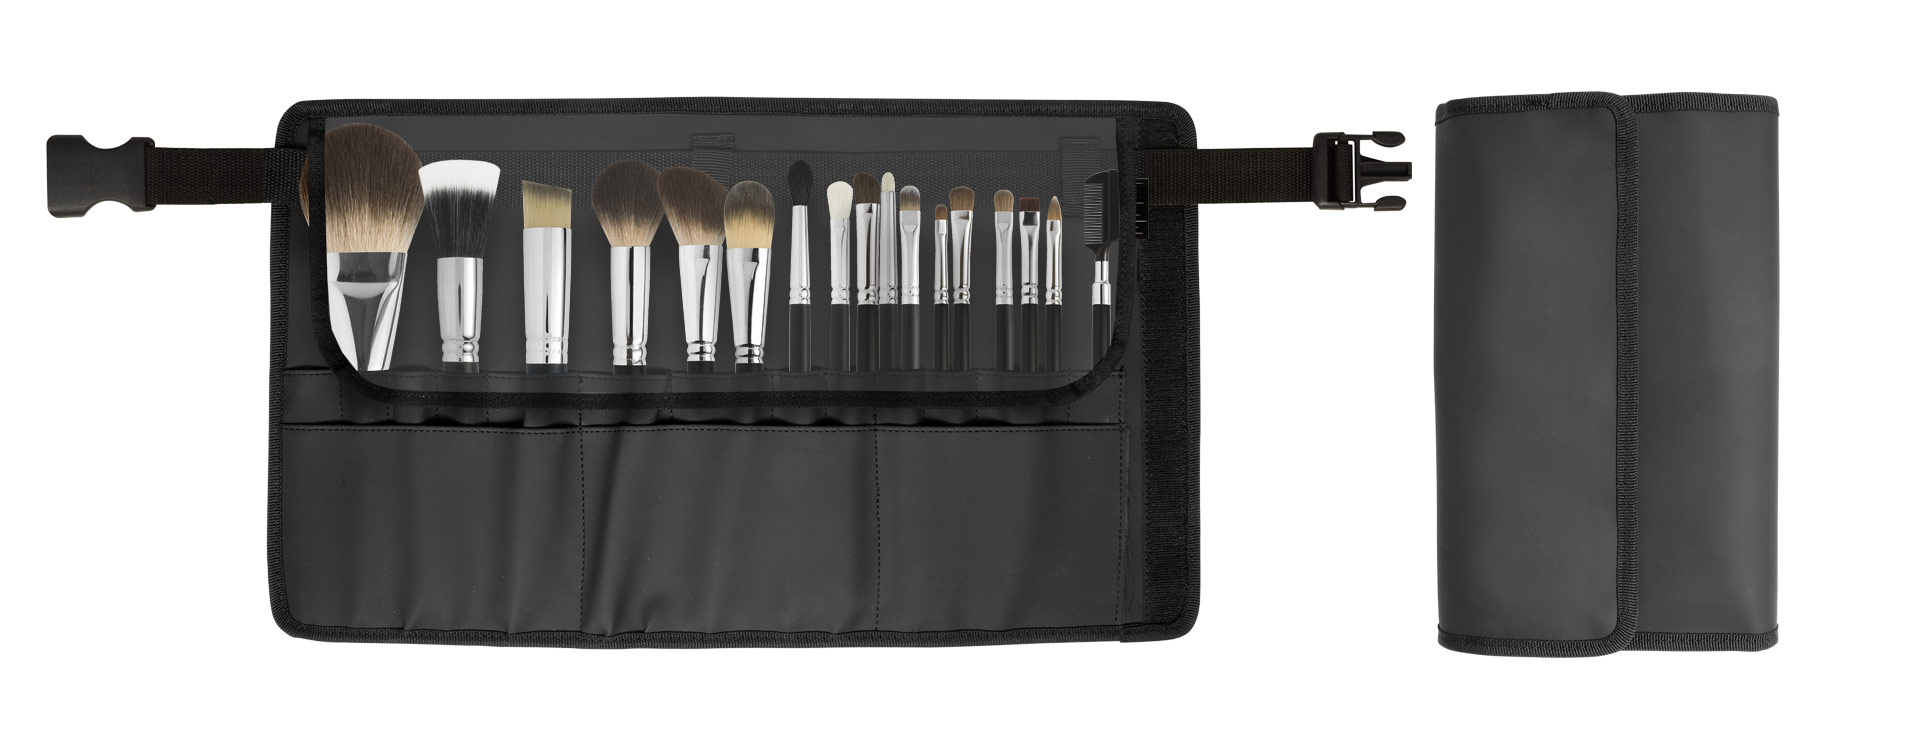 BRUSH HOLDER WITH No.17 PROFESSIONAL BRUSHES